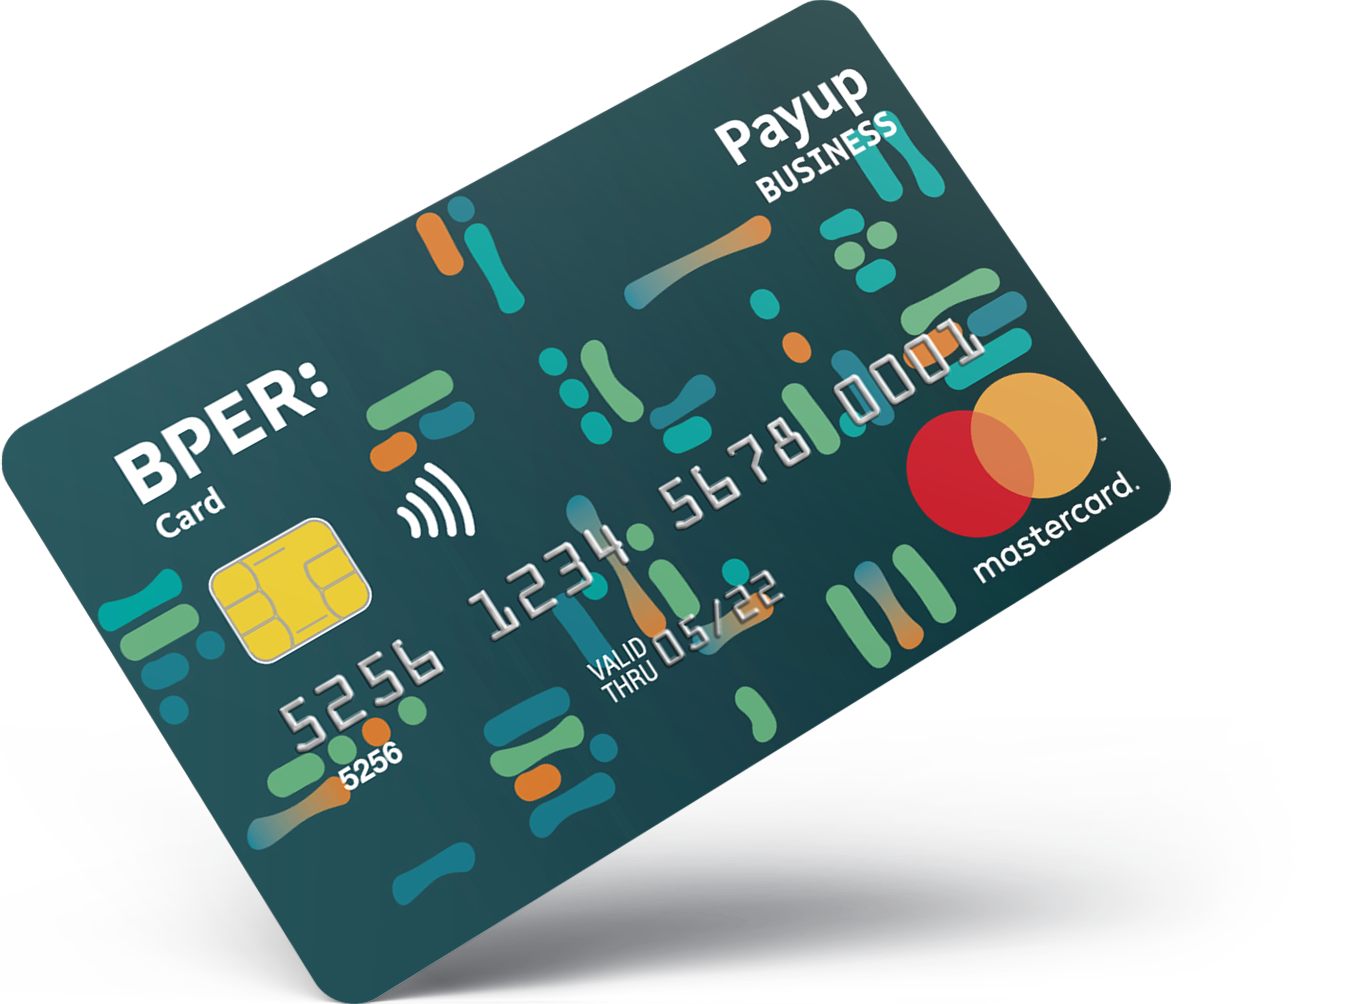 BPER Card PayUp Business